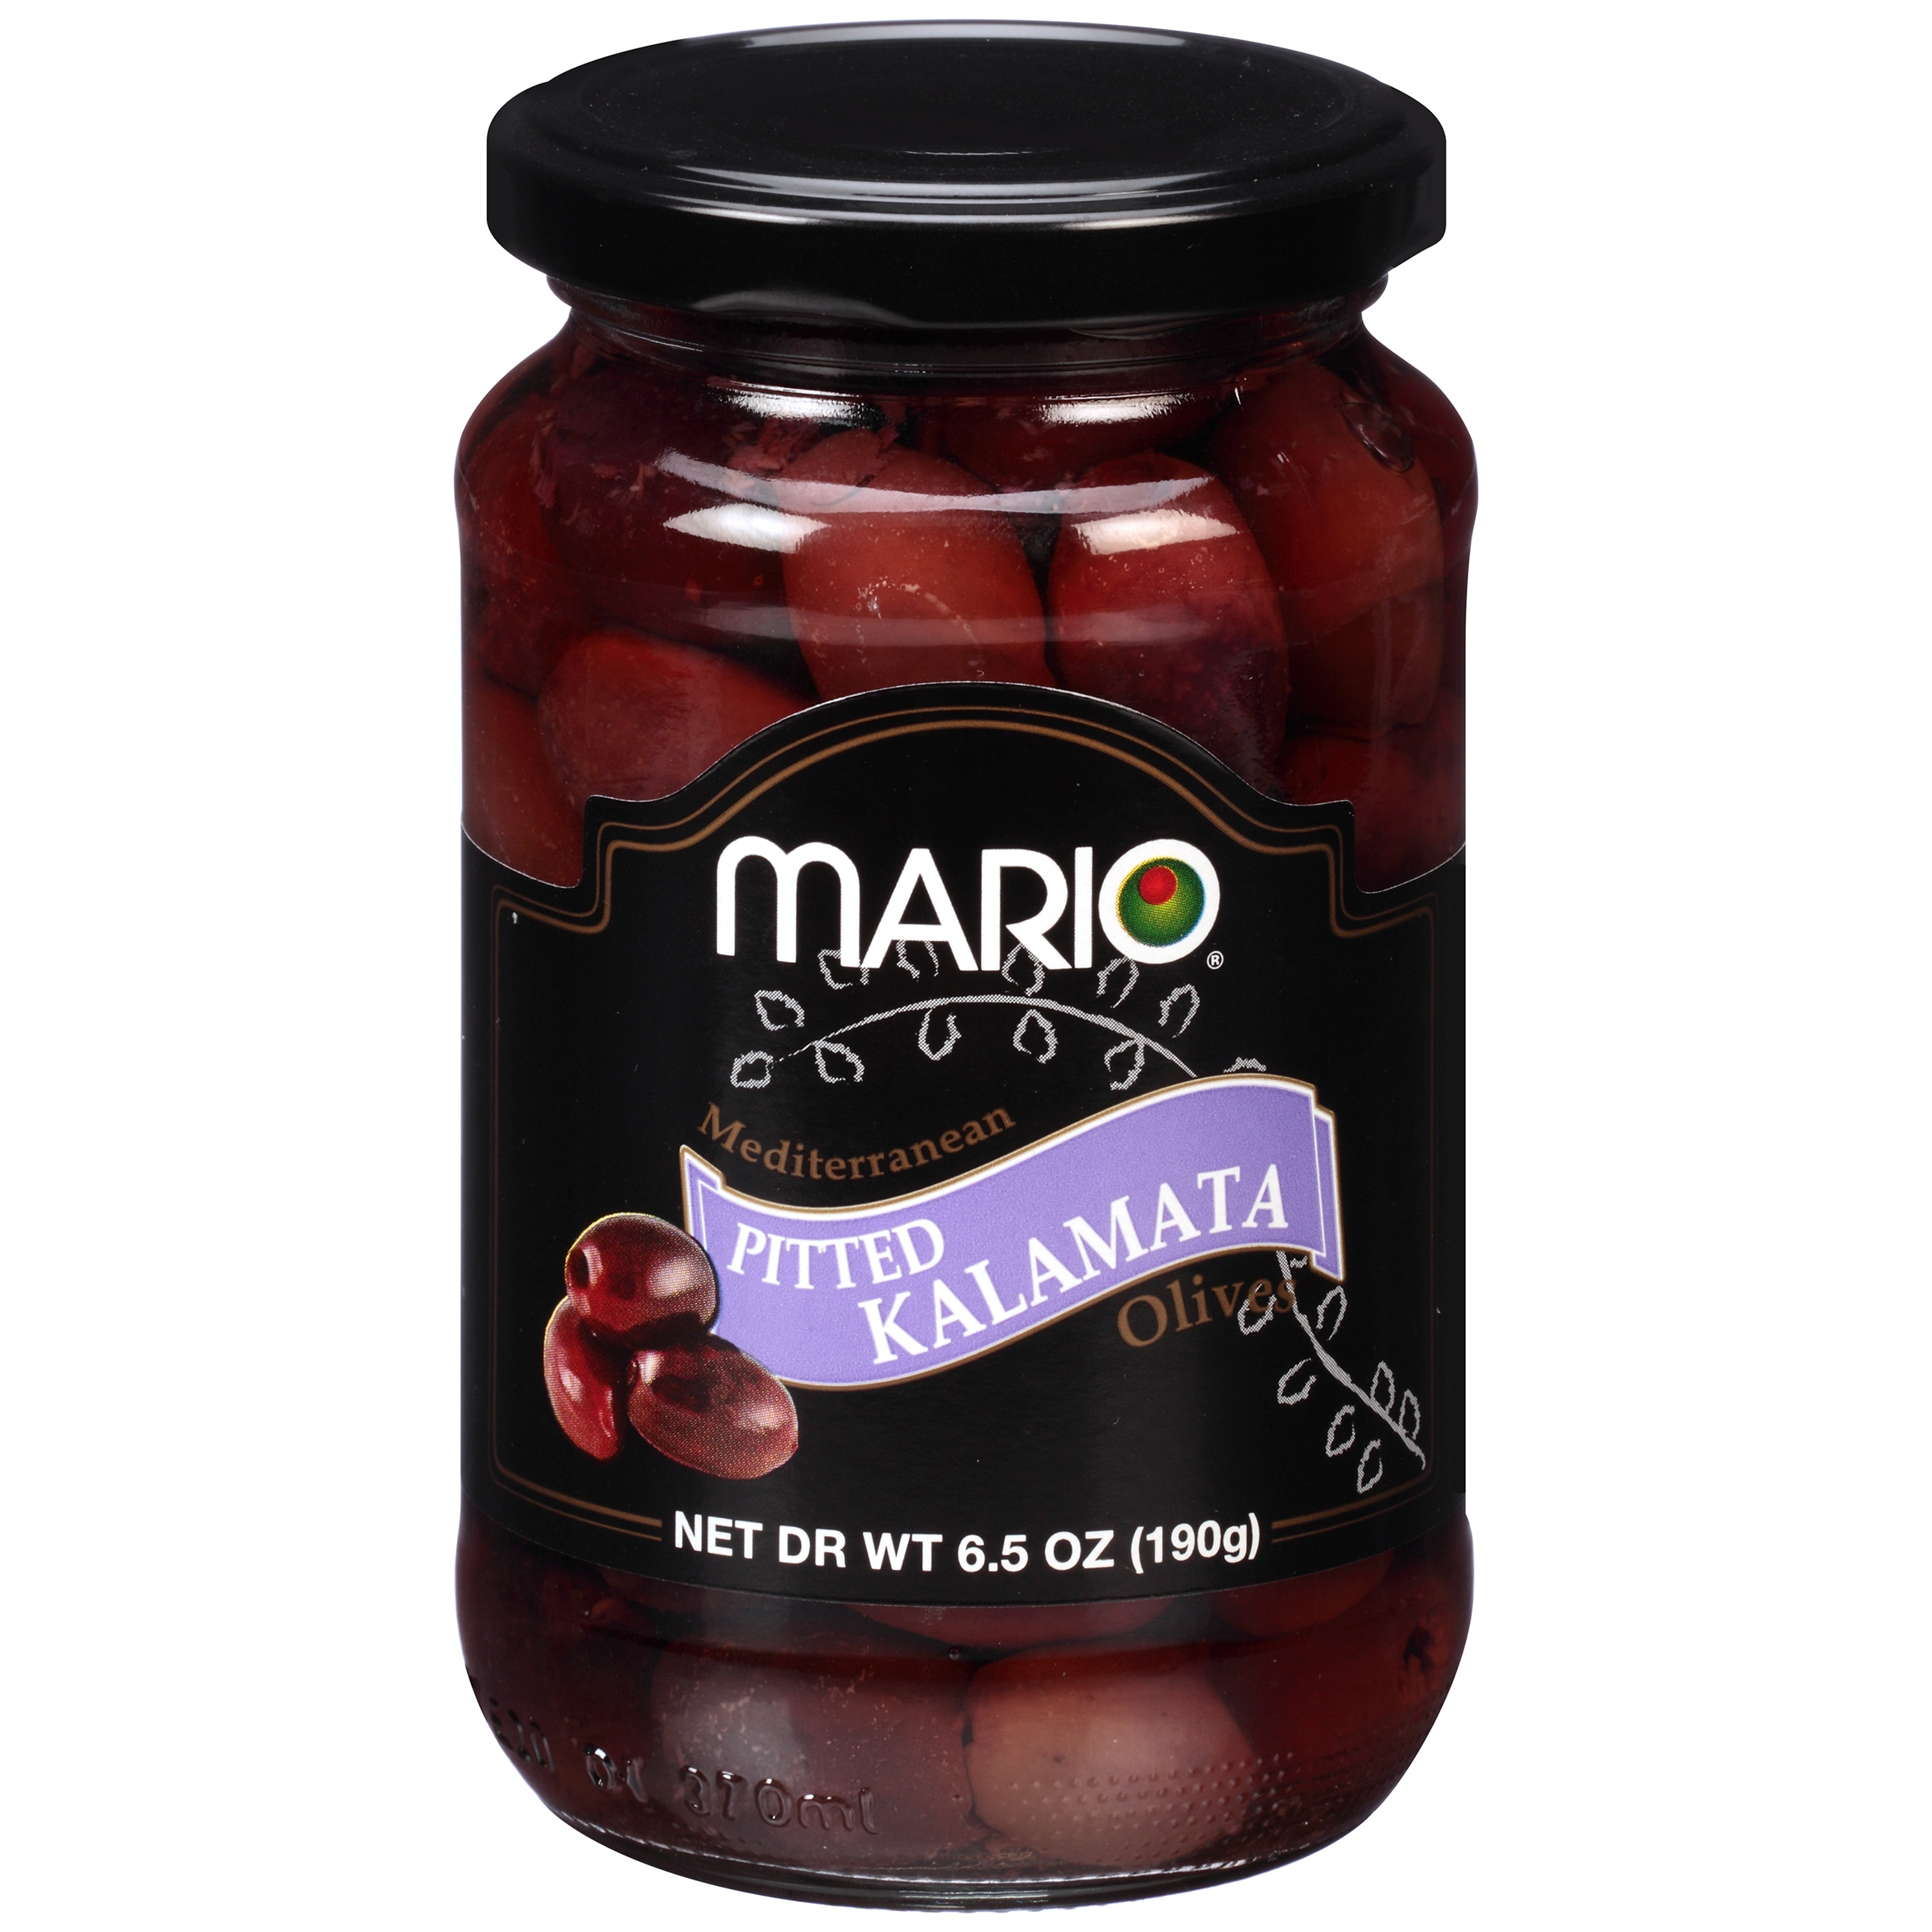 (2 Pack) Mario Mediterranean Pitted Kalamata Olives, 6.5 oz